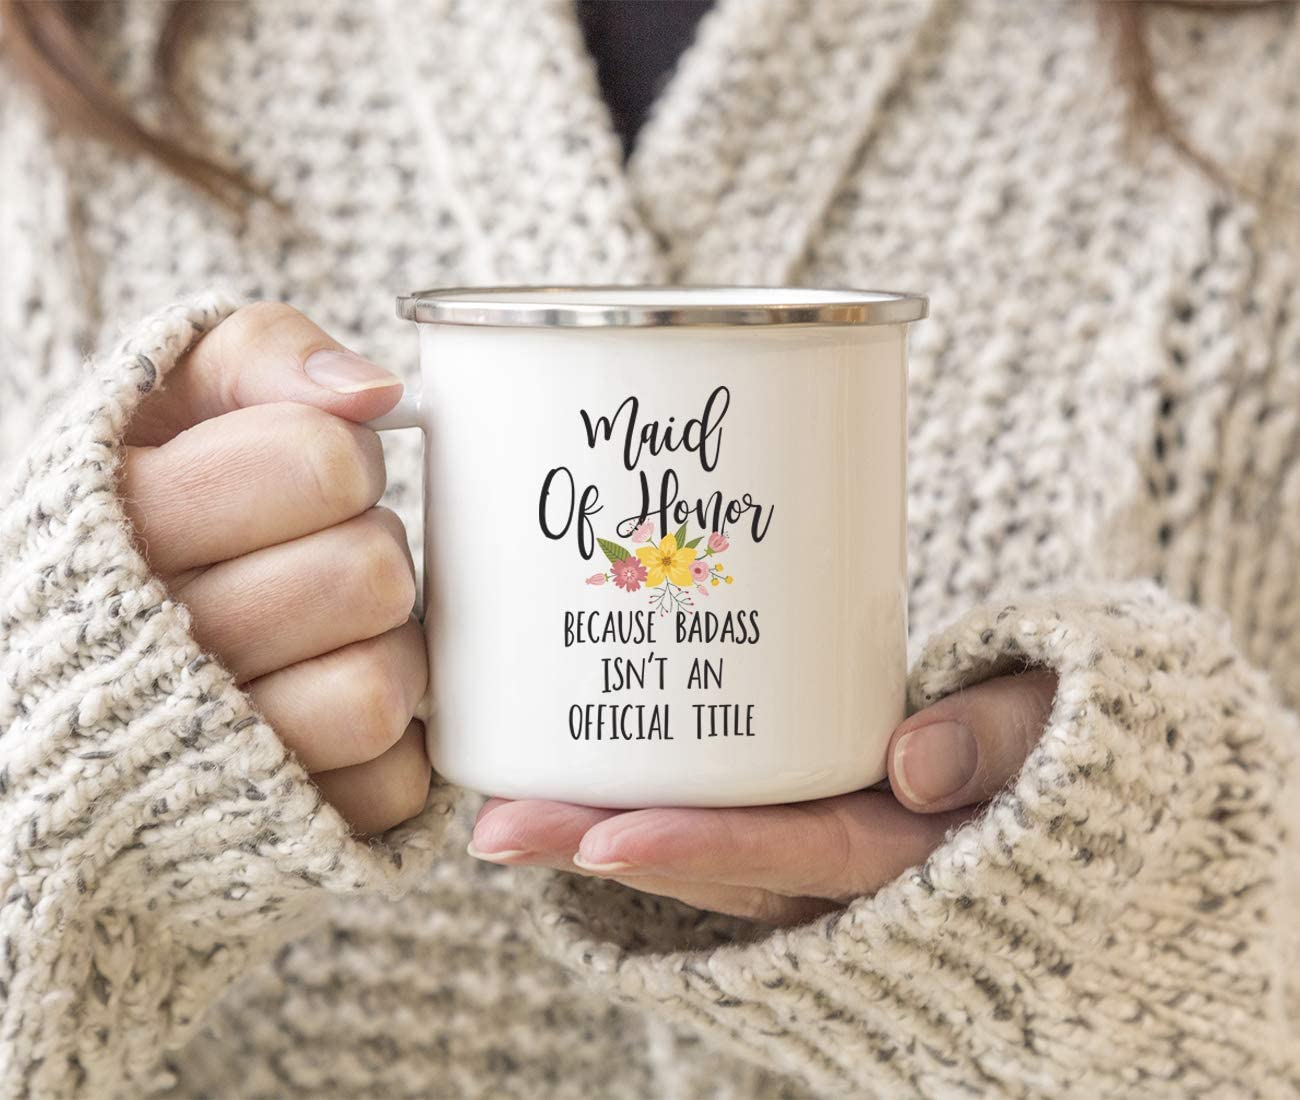 maid-of-honor-gifts-mug